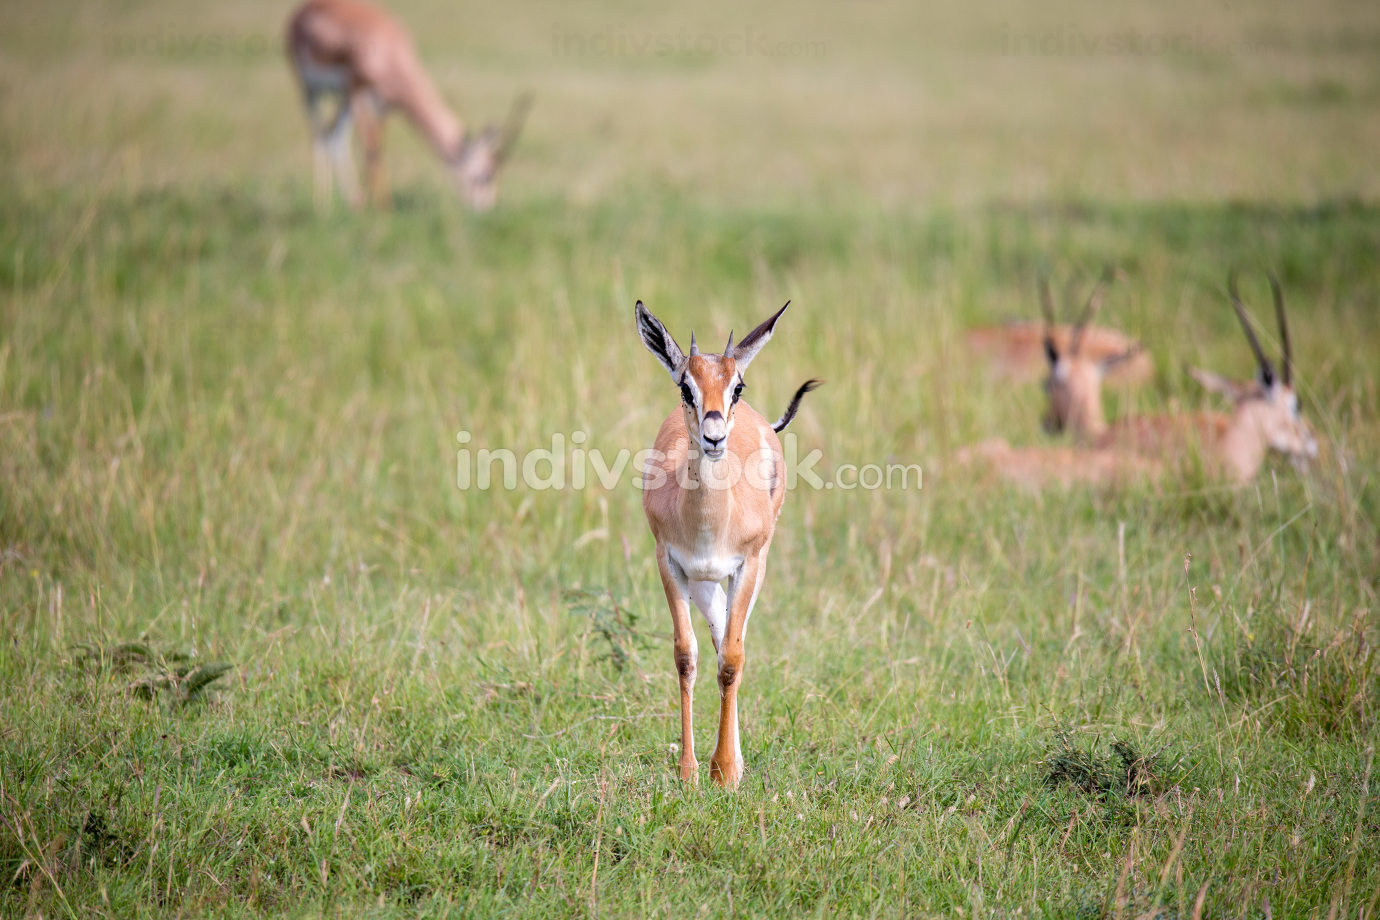 Thomson Gazelle in the Kenyan savannah amidst a grassy landscape